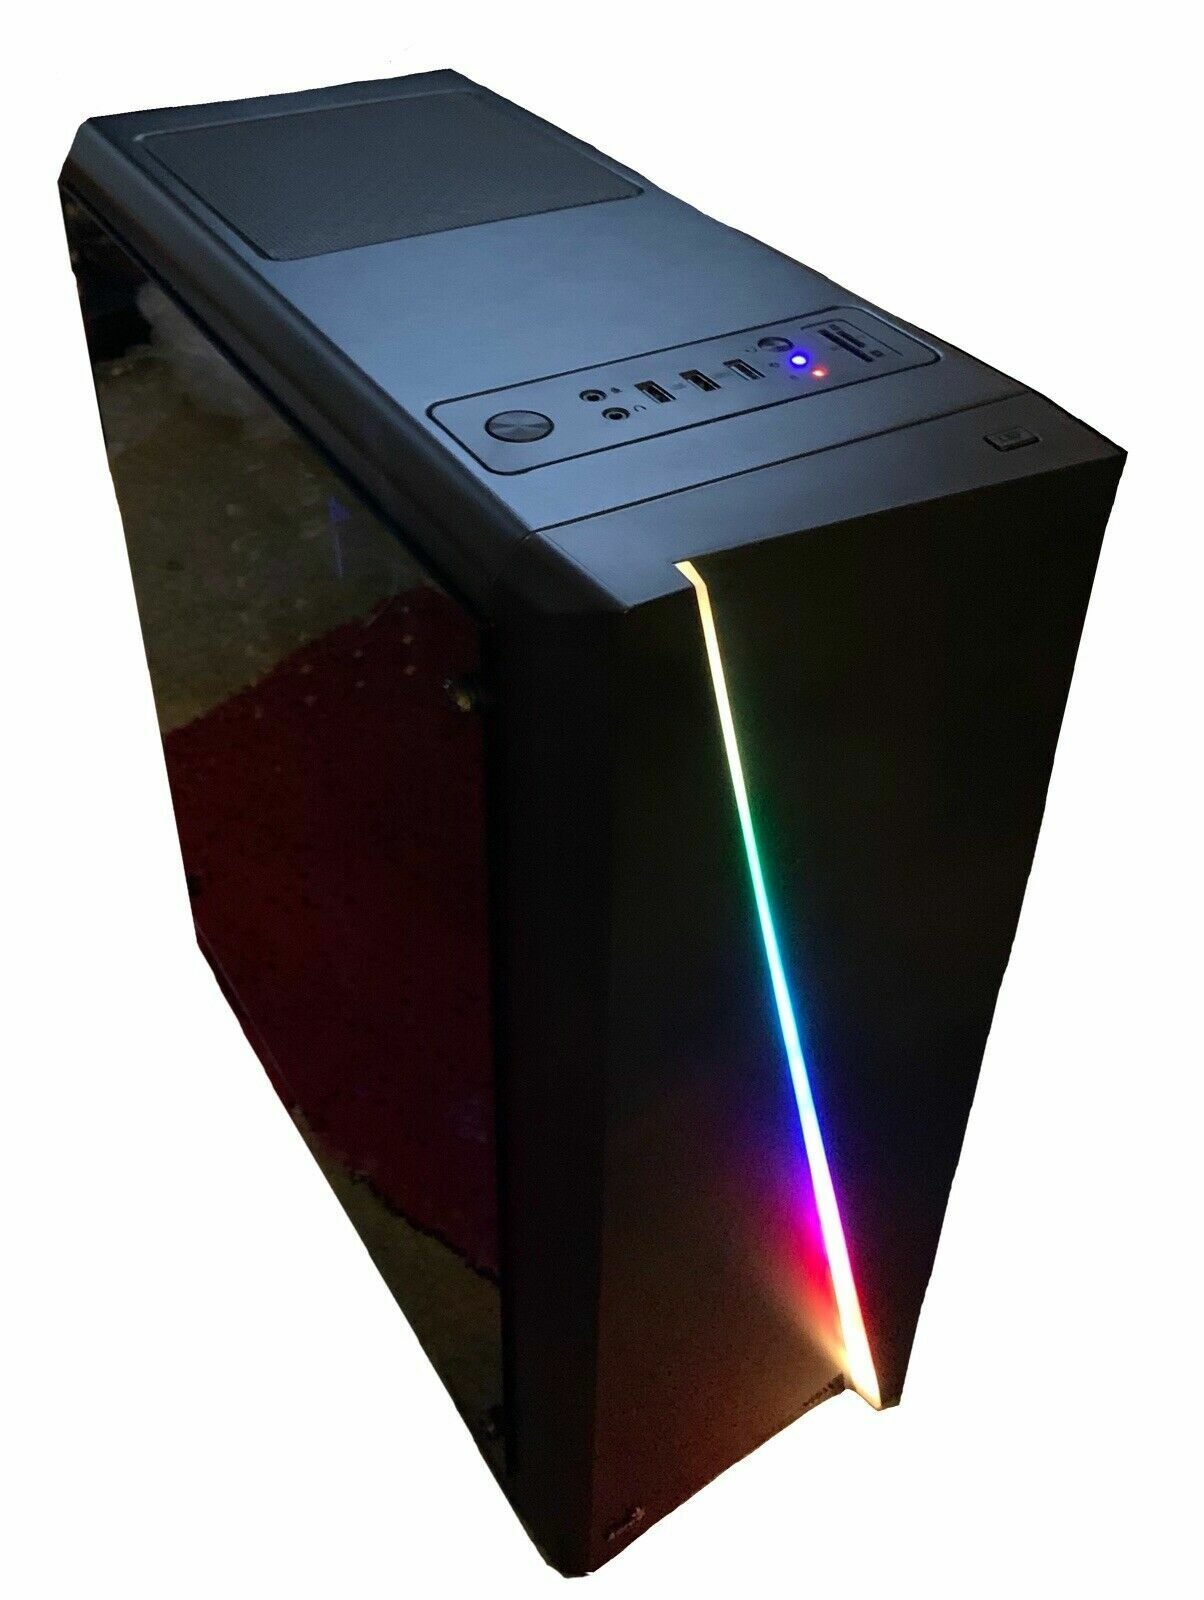 Computer Games - Brand New Custom Built Computer, Great For Games Like Fortnite, Mid-Tower, Black